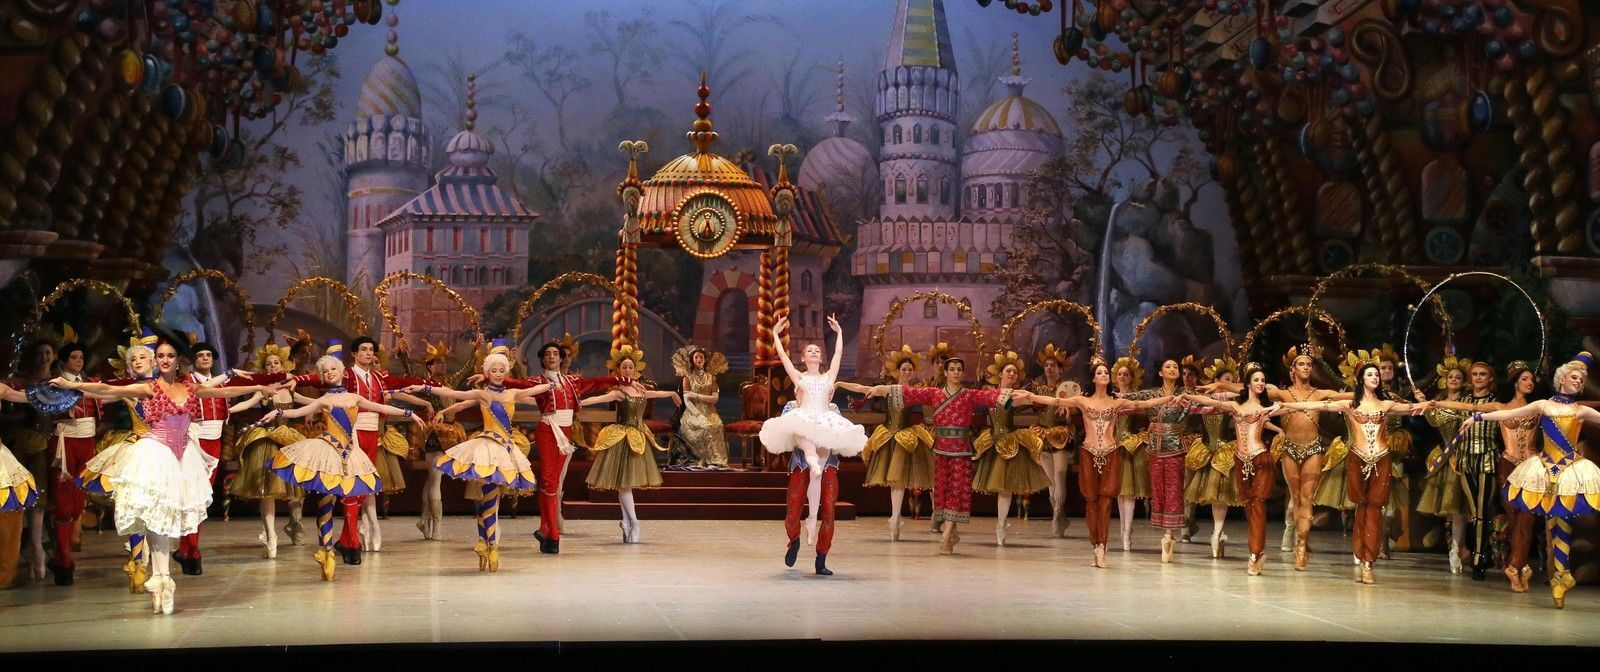 Moscow Ballets Great Russian Nutcracker Easton | Easton, PA | State Theatre Center for the Arts Easton | December 10, 2017